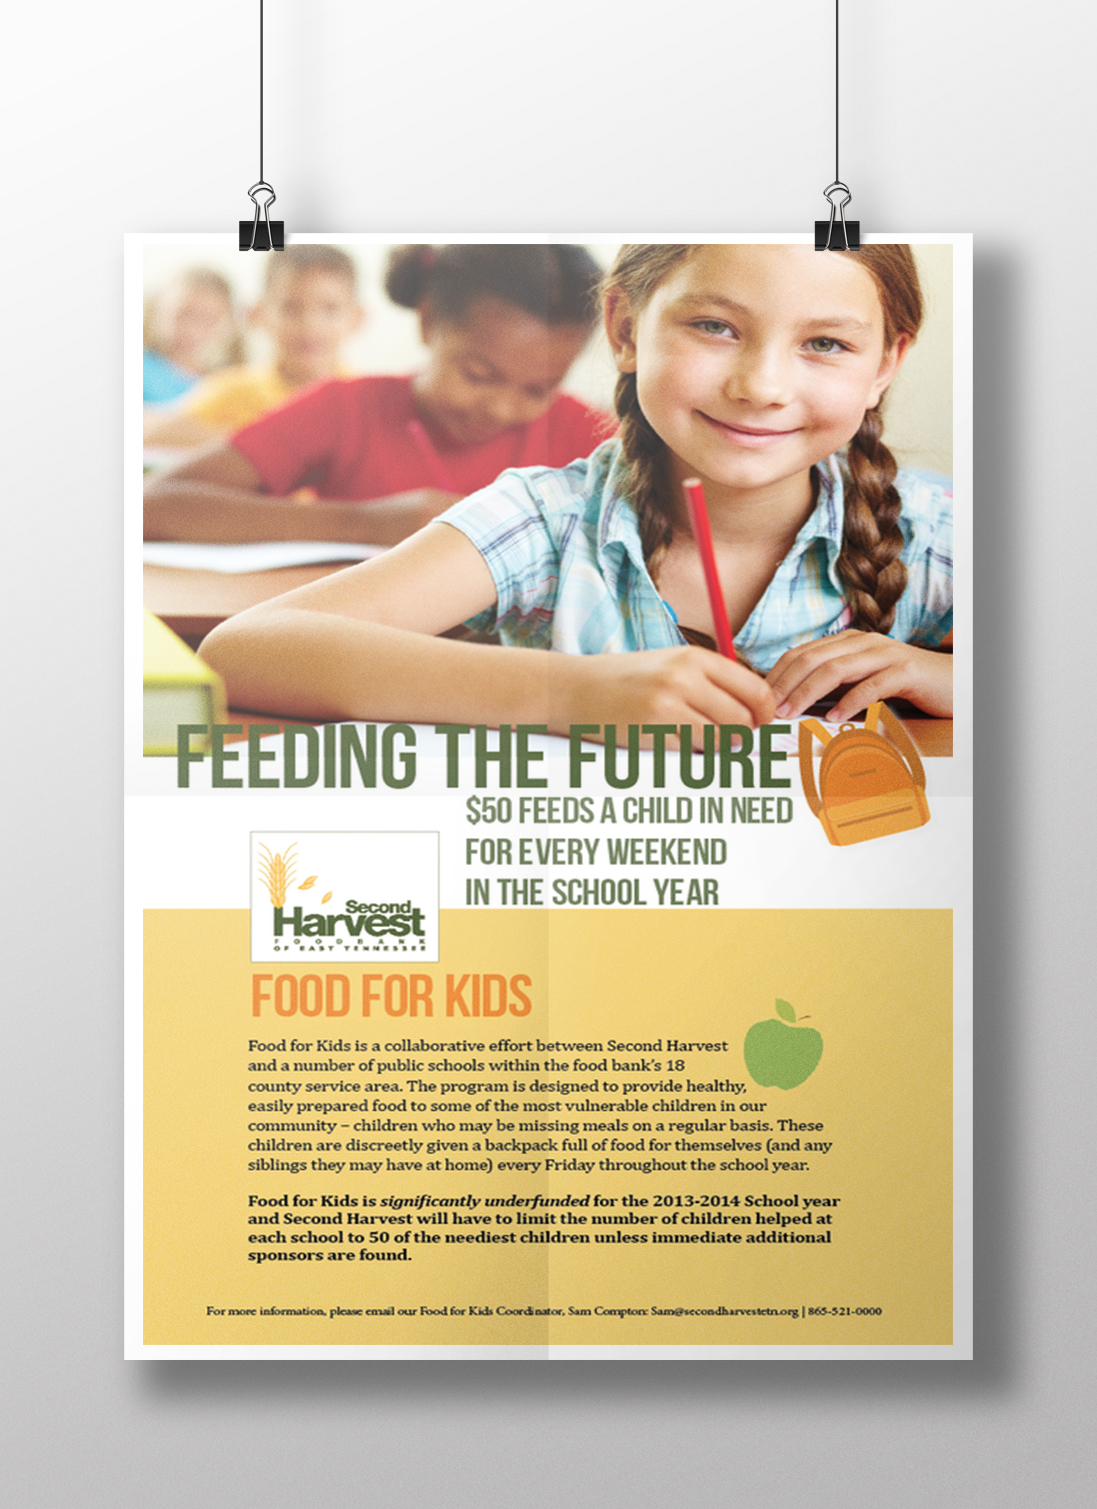 Food For Kids - Poster created in Adobe InDesign - class project